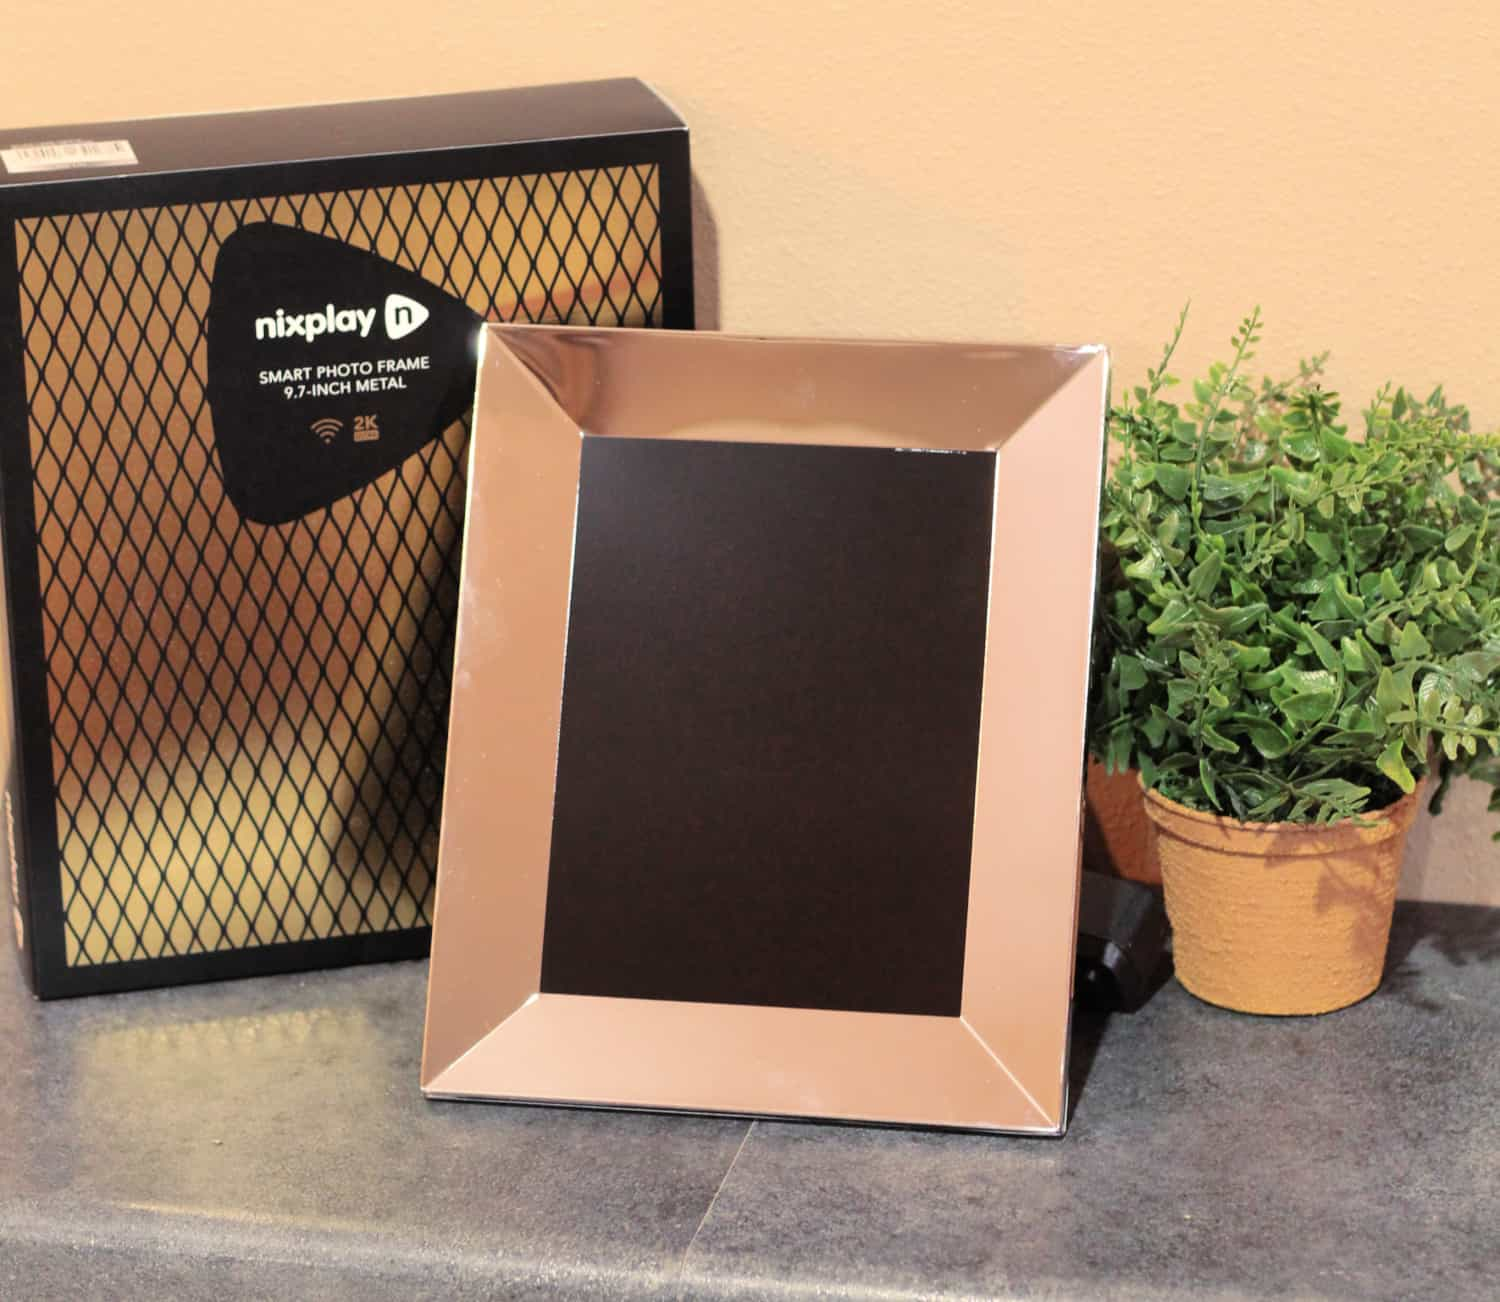 photo frame, photo box and plant